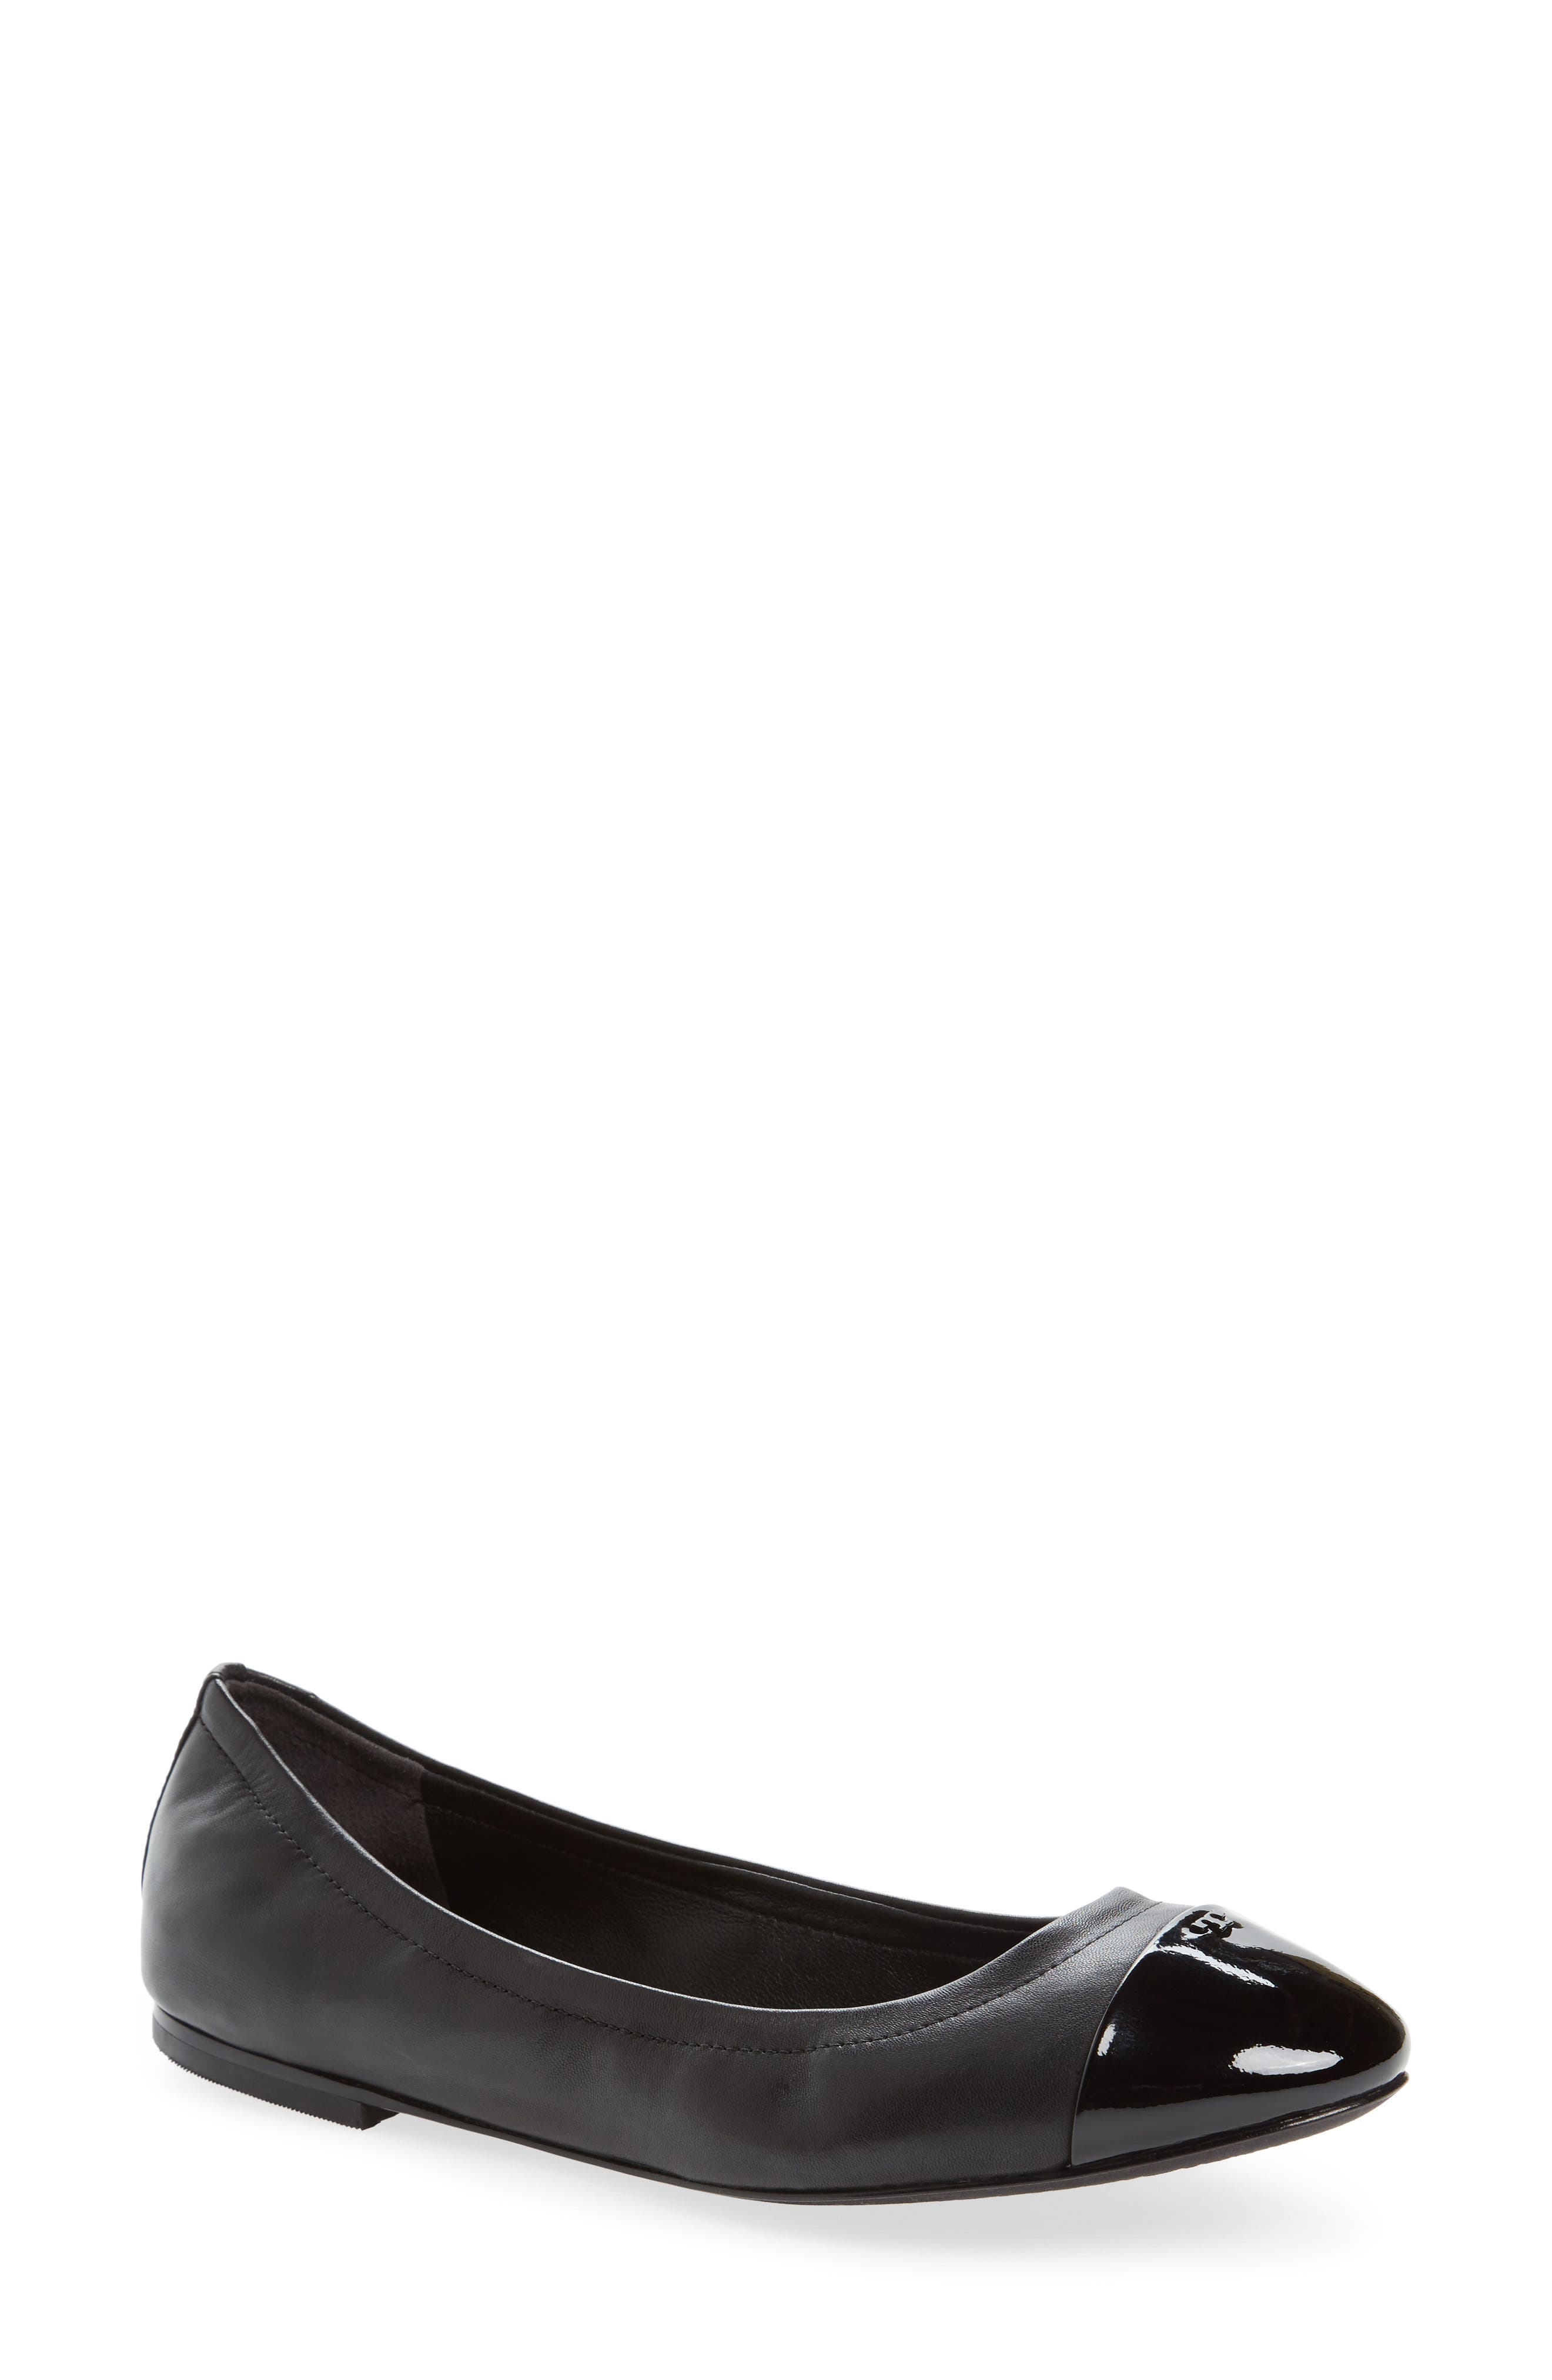 Alternate Image 1 Selected - Tory Burch Shelby Cap Toe Ballet Flat (Women)